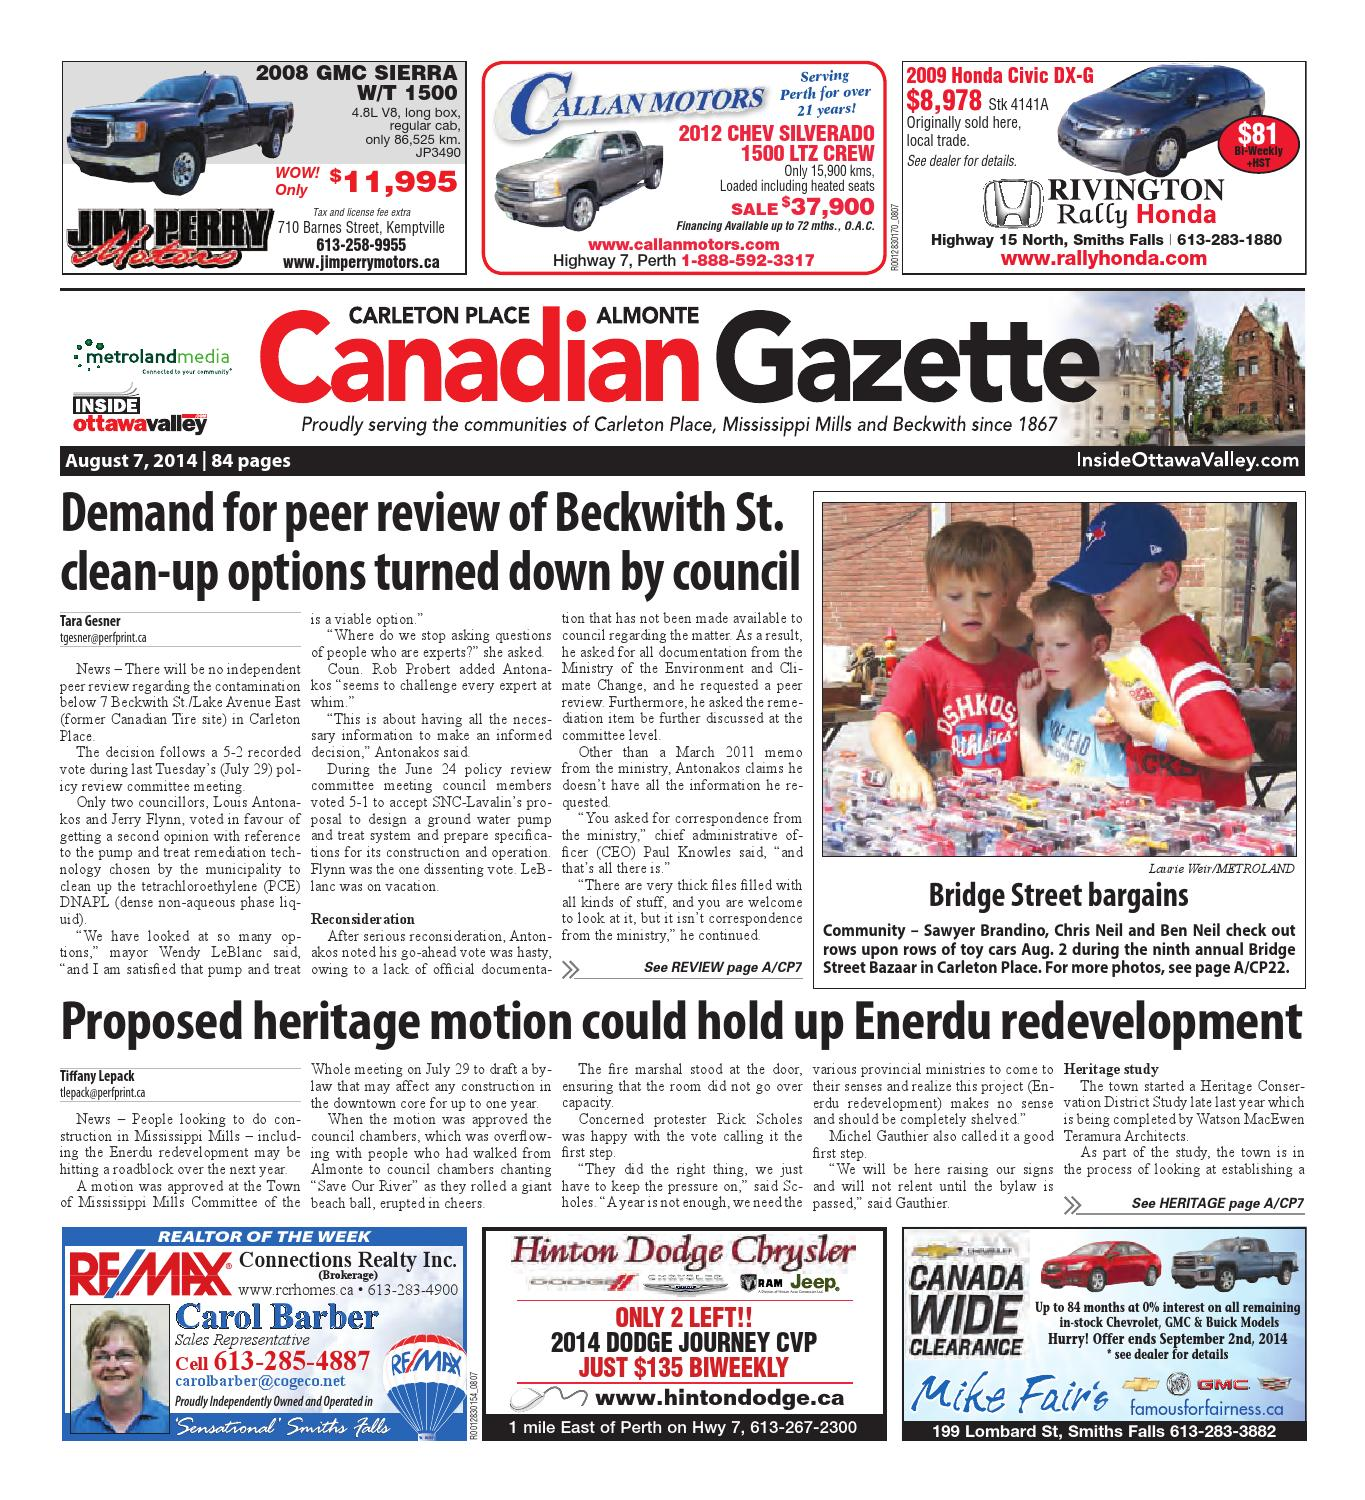 a5238764bf7 Almontecarletonplace080714 by Metroland East - Almonte Carleton Place  Canadian Gazette - issuu